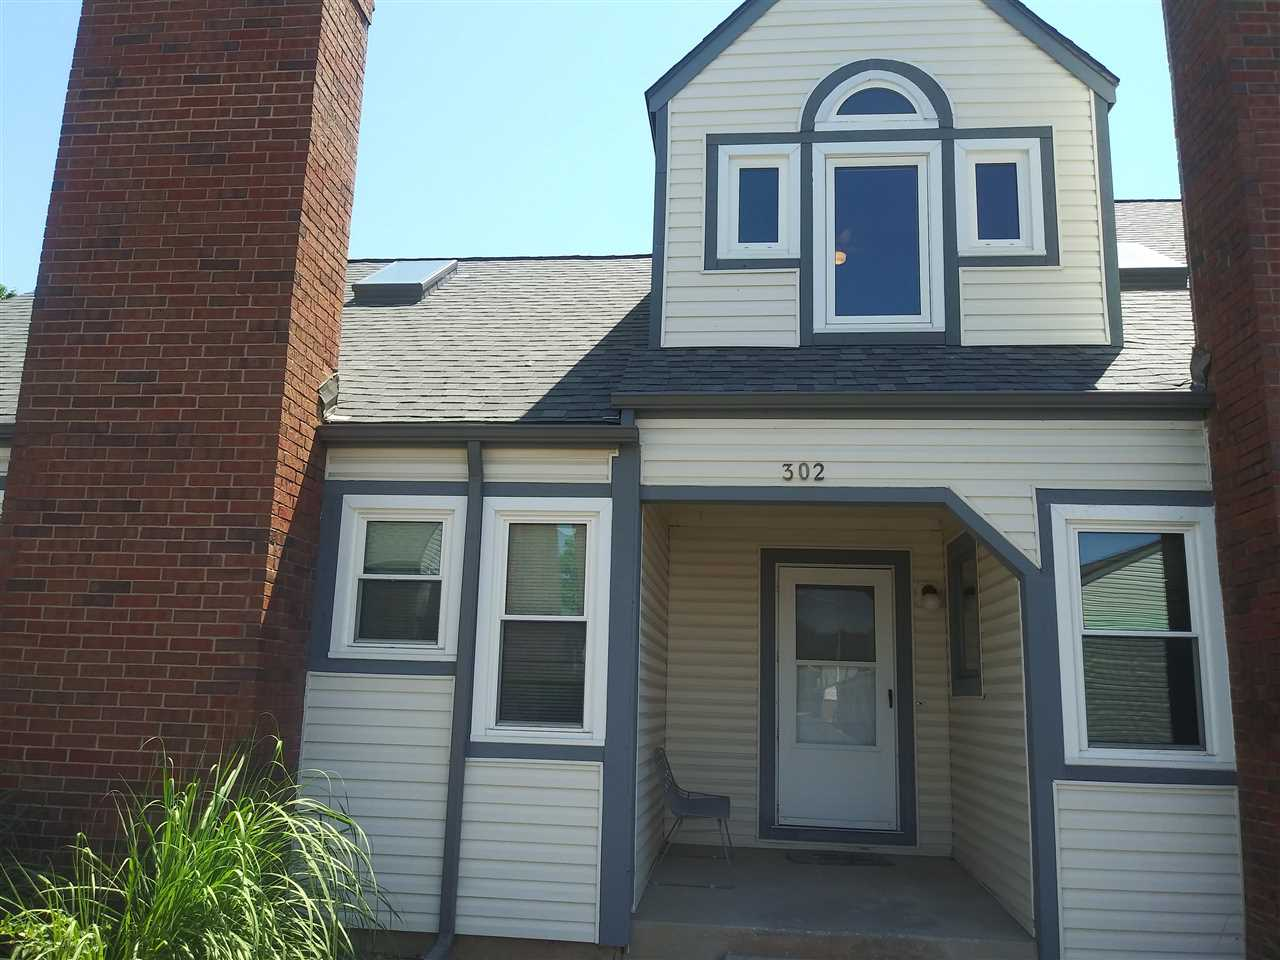 Welcome to this spacious Townhome that features 3 bedrooms, 2 full baths and 1 half bath, a full fin